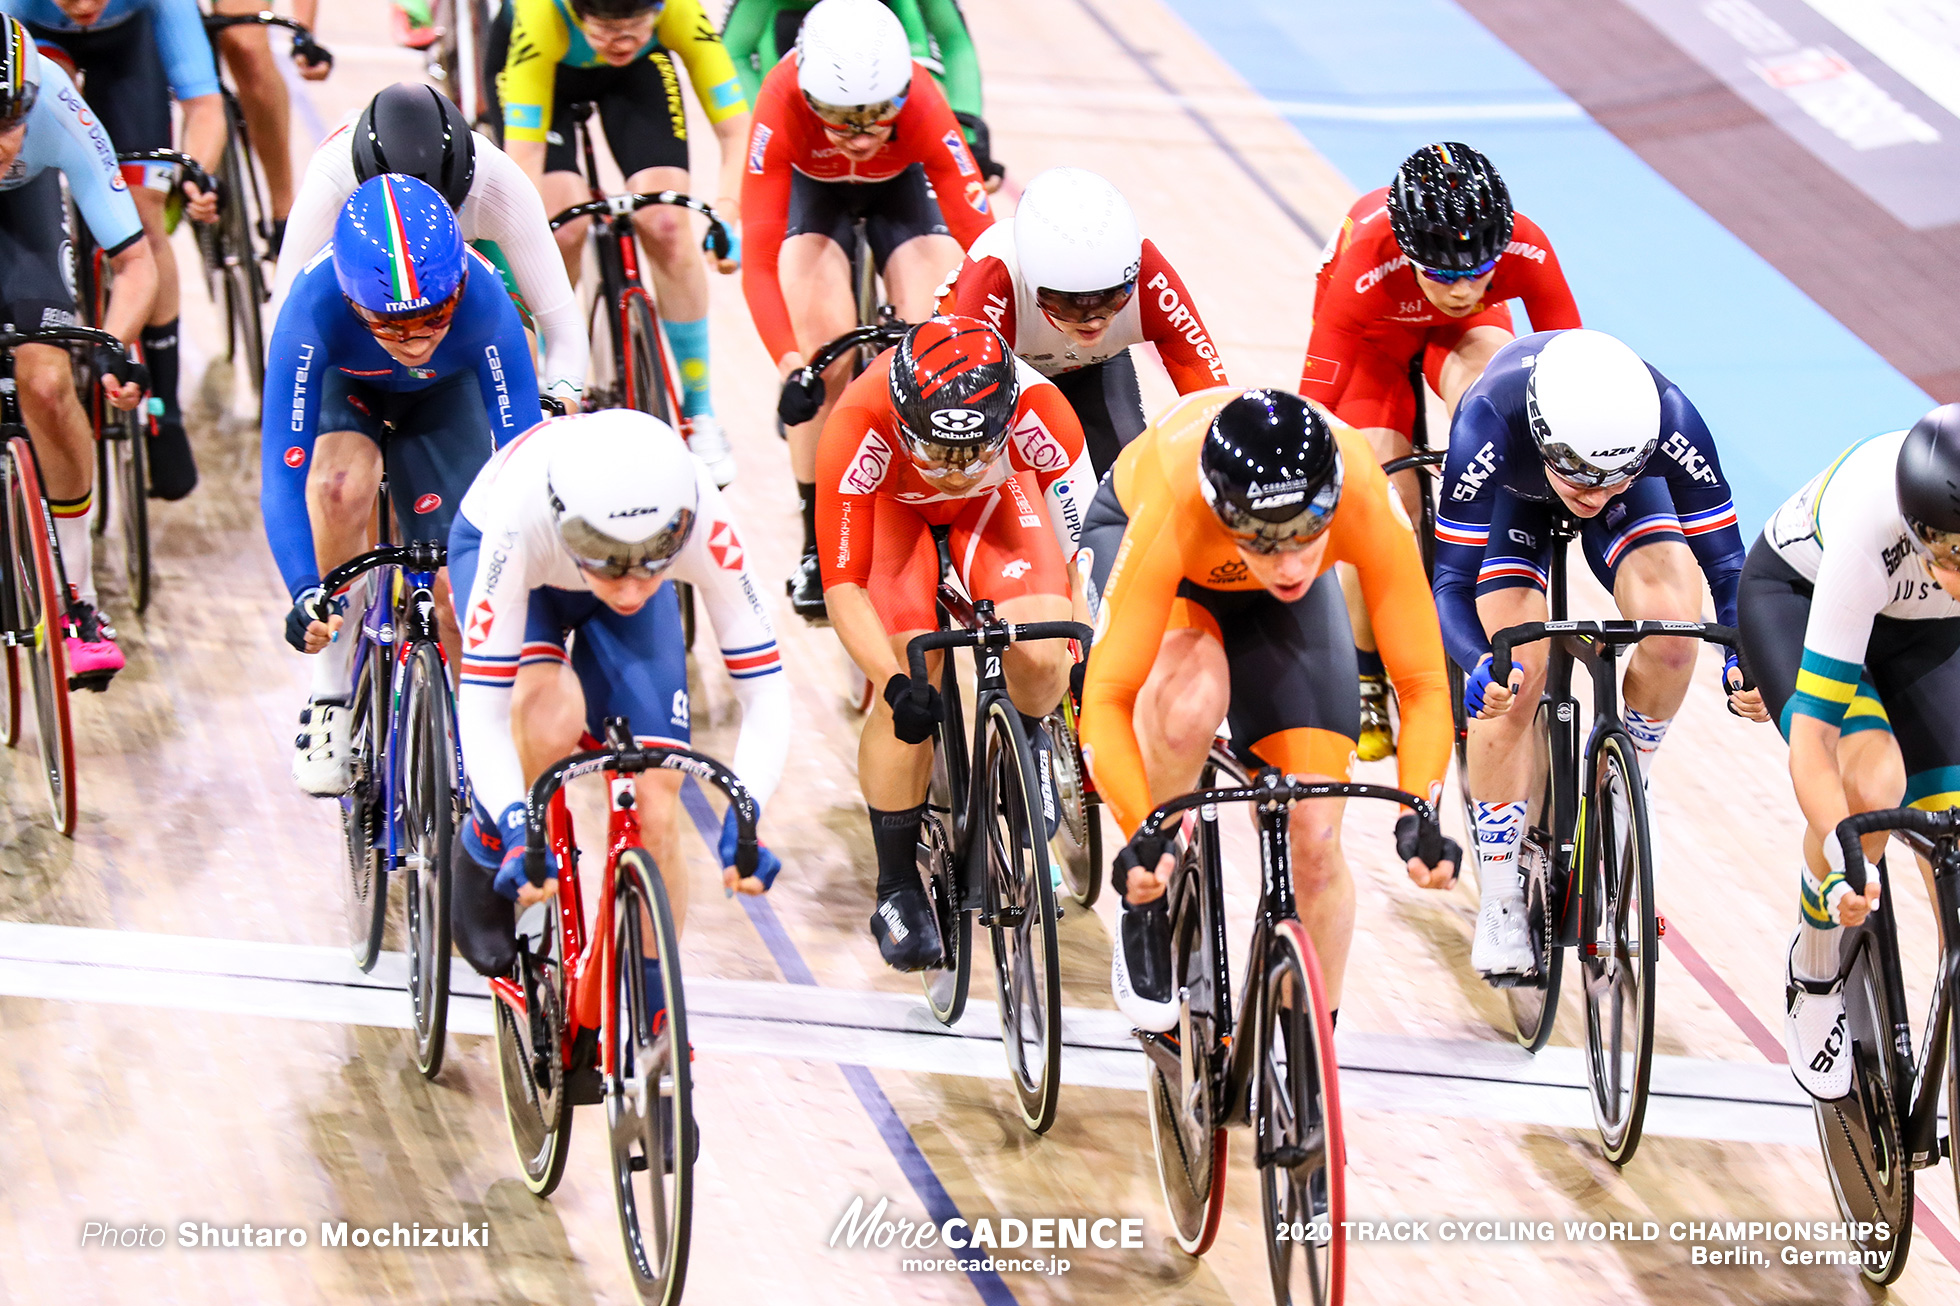 Scratch Race / Women's Omnium / 2020 Track Cycling World Championships, Kirsten Wild キルステン・ウィルト, Laura Kenny ローラ・ケニー, Kajihara Yumi 梶原悠未, Clara Copponi クララ・コッポーニ